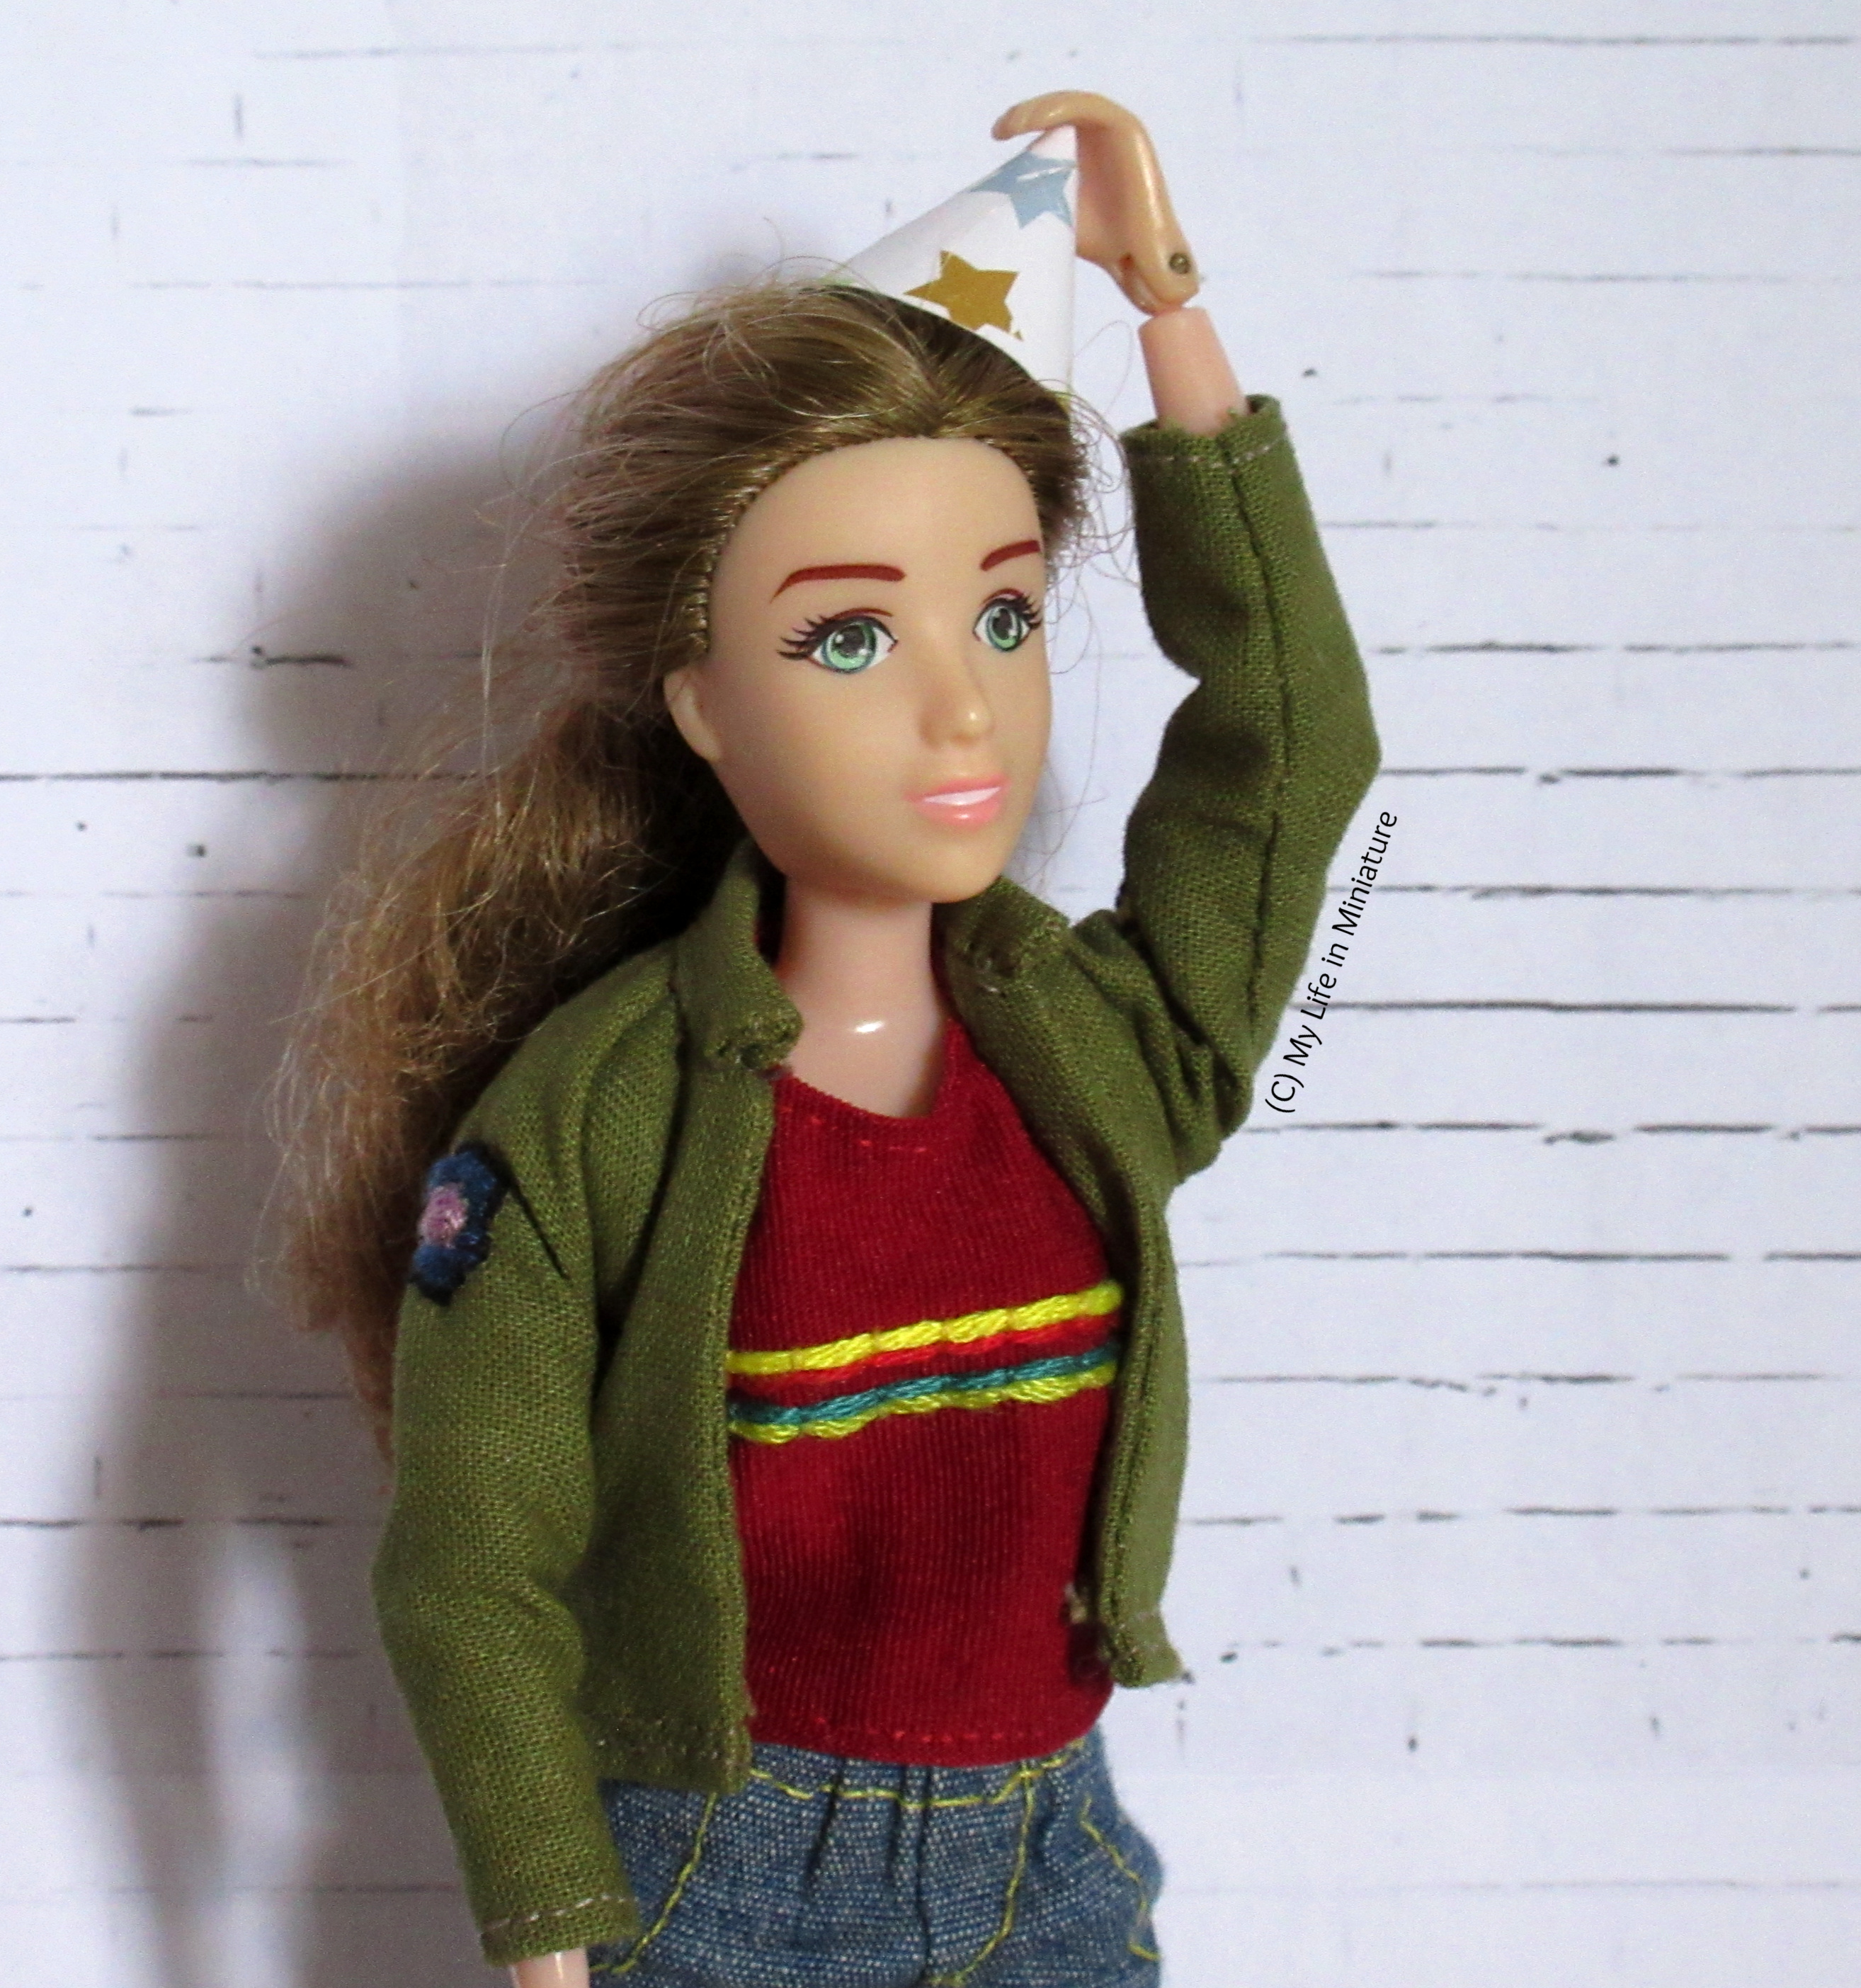 Sarah looks off into the middle distance, holding a small party hat on her head. She's in a khaki jacket, a red striped shirt, and jeans.